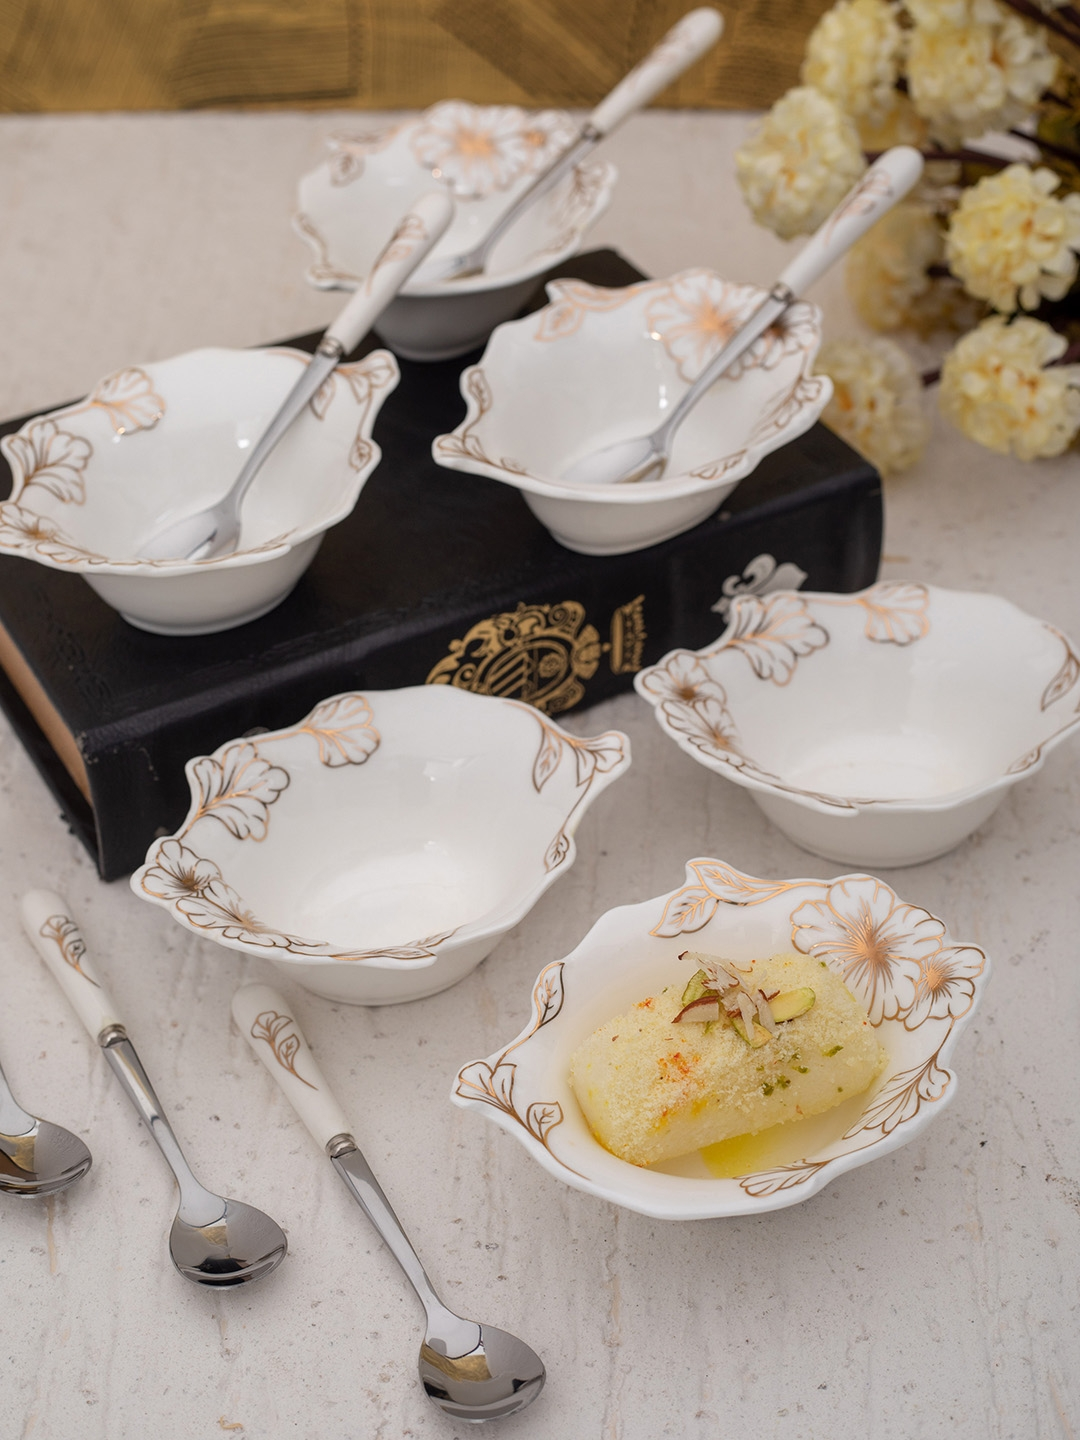 White Gold Set Of 12 White Porcelain Dessert Bowls n Spoons with Real Gold Design